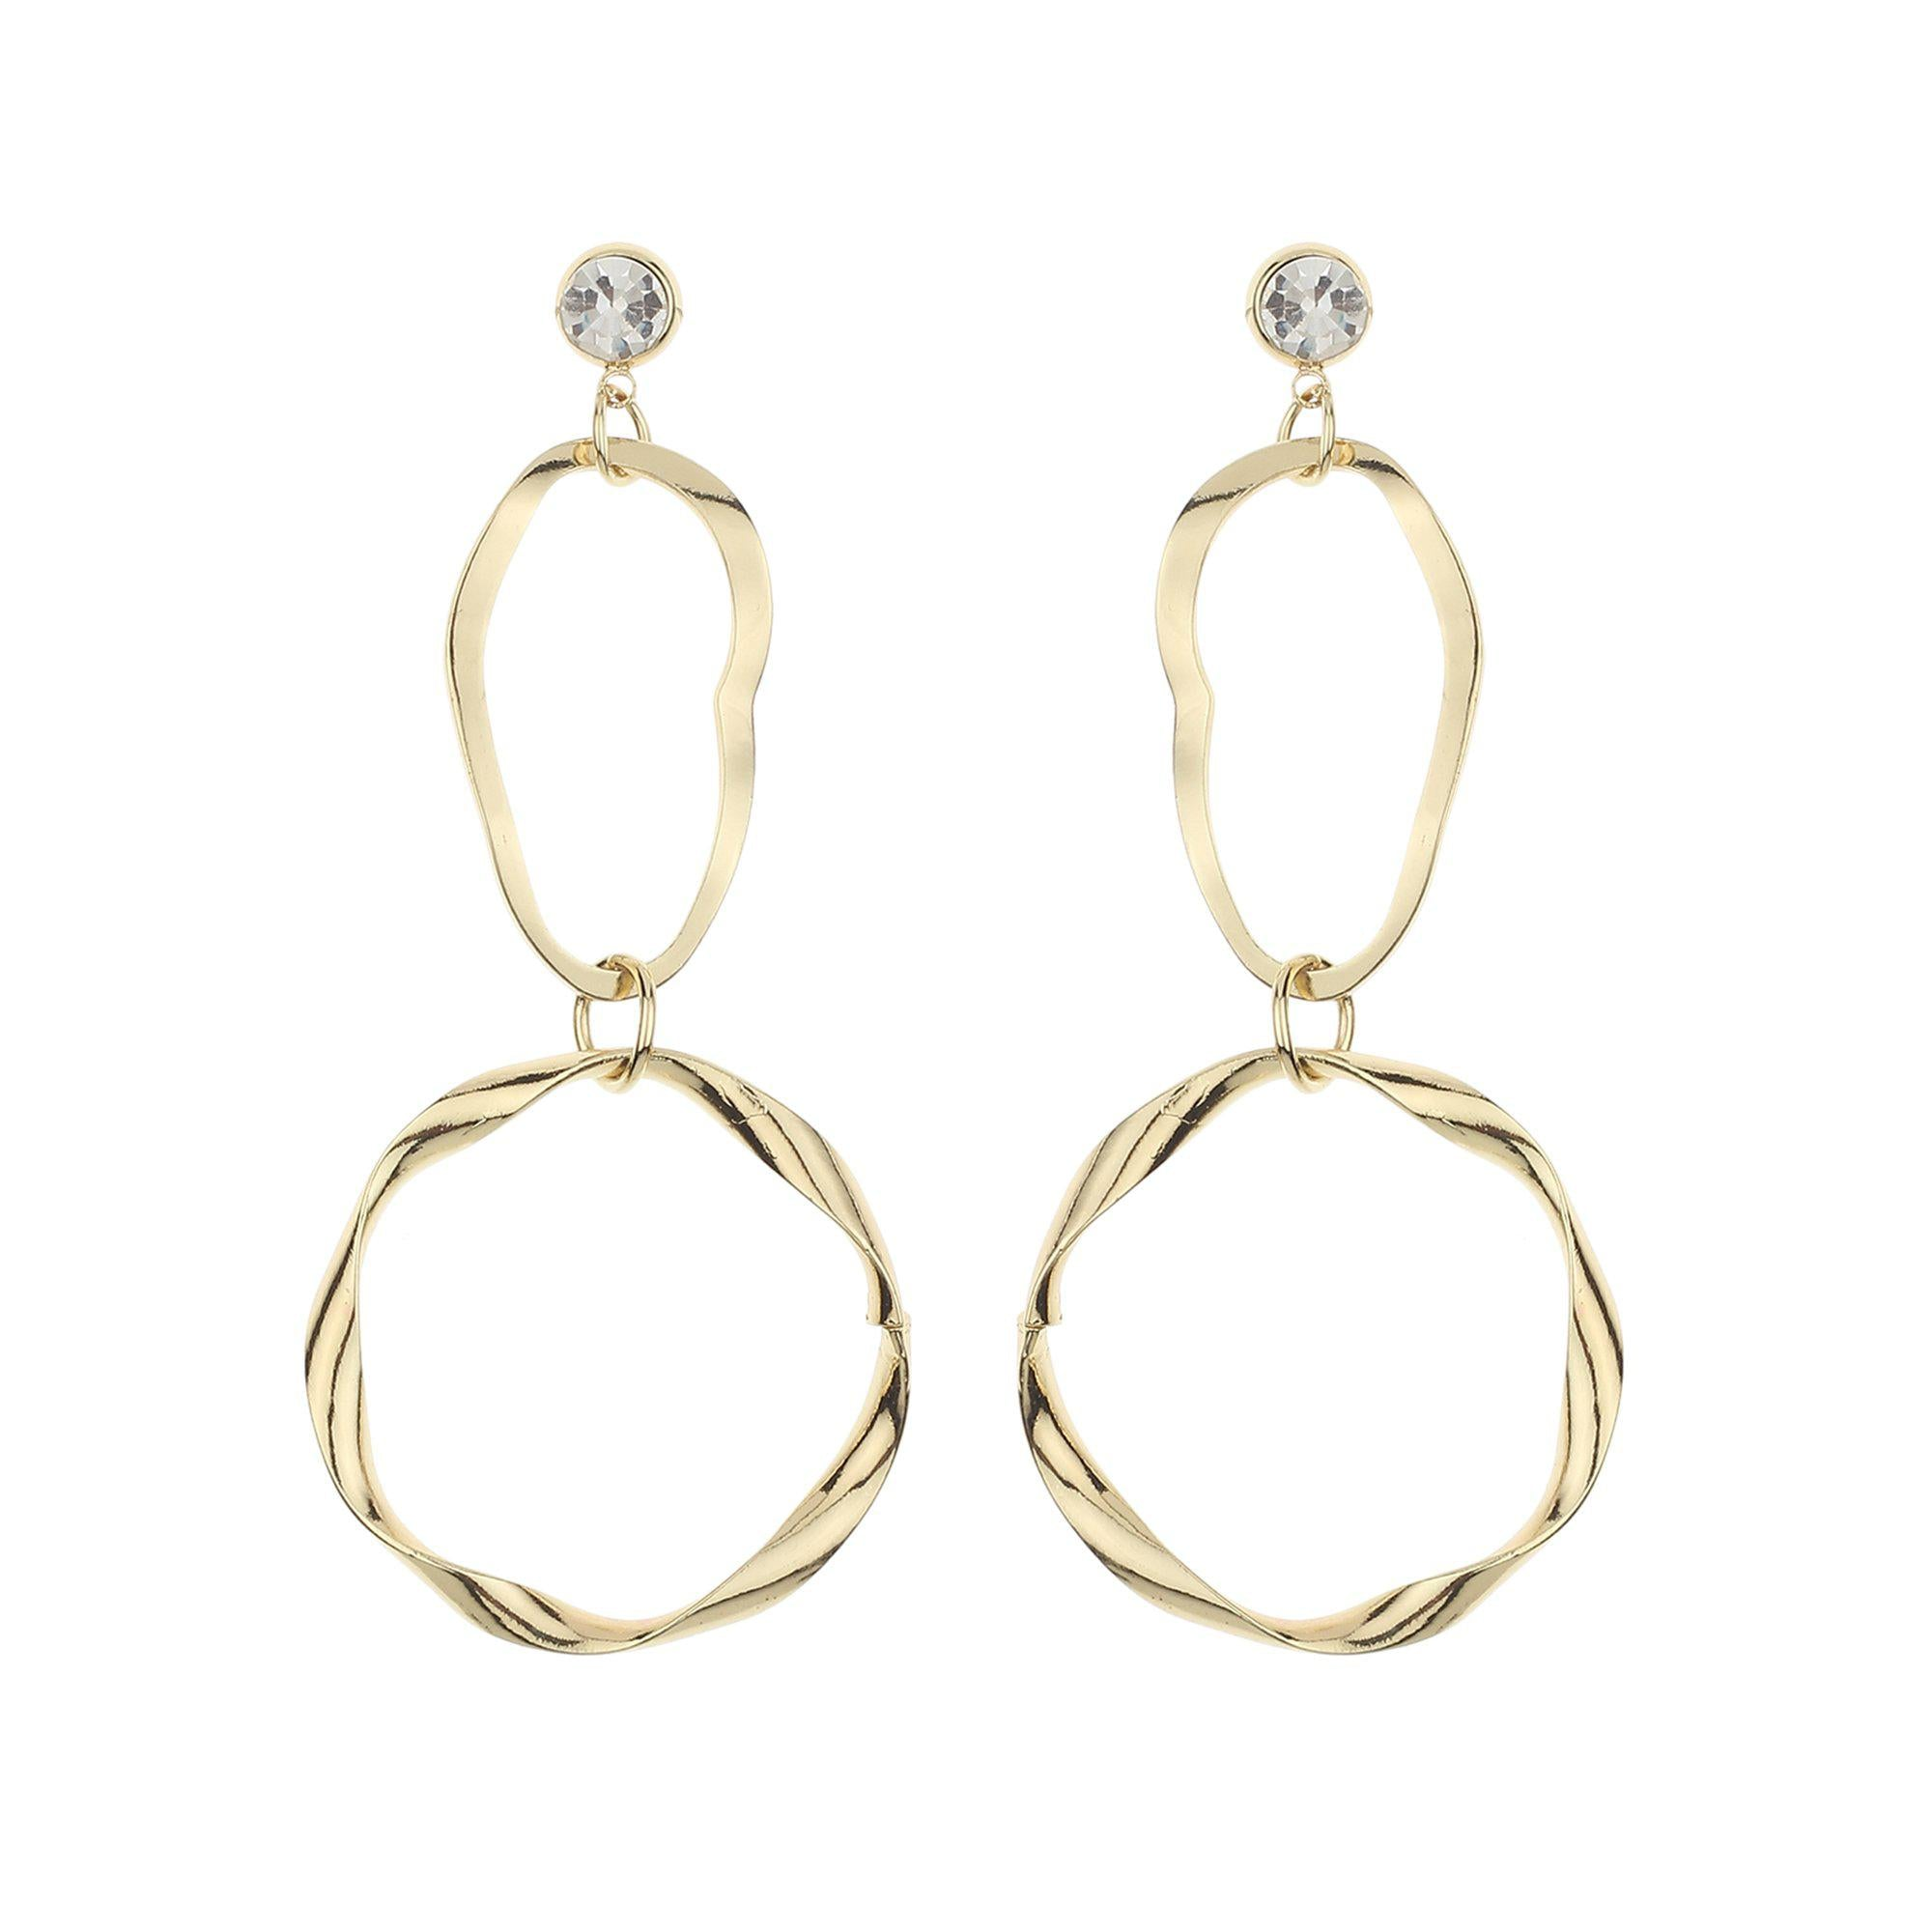 Korean Golden Hoop Earrings